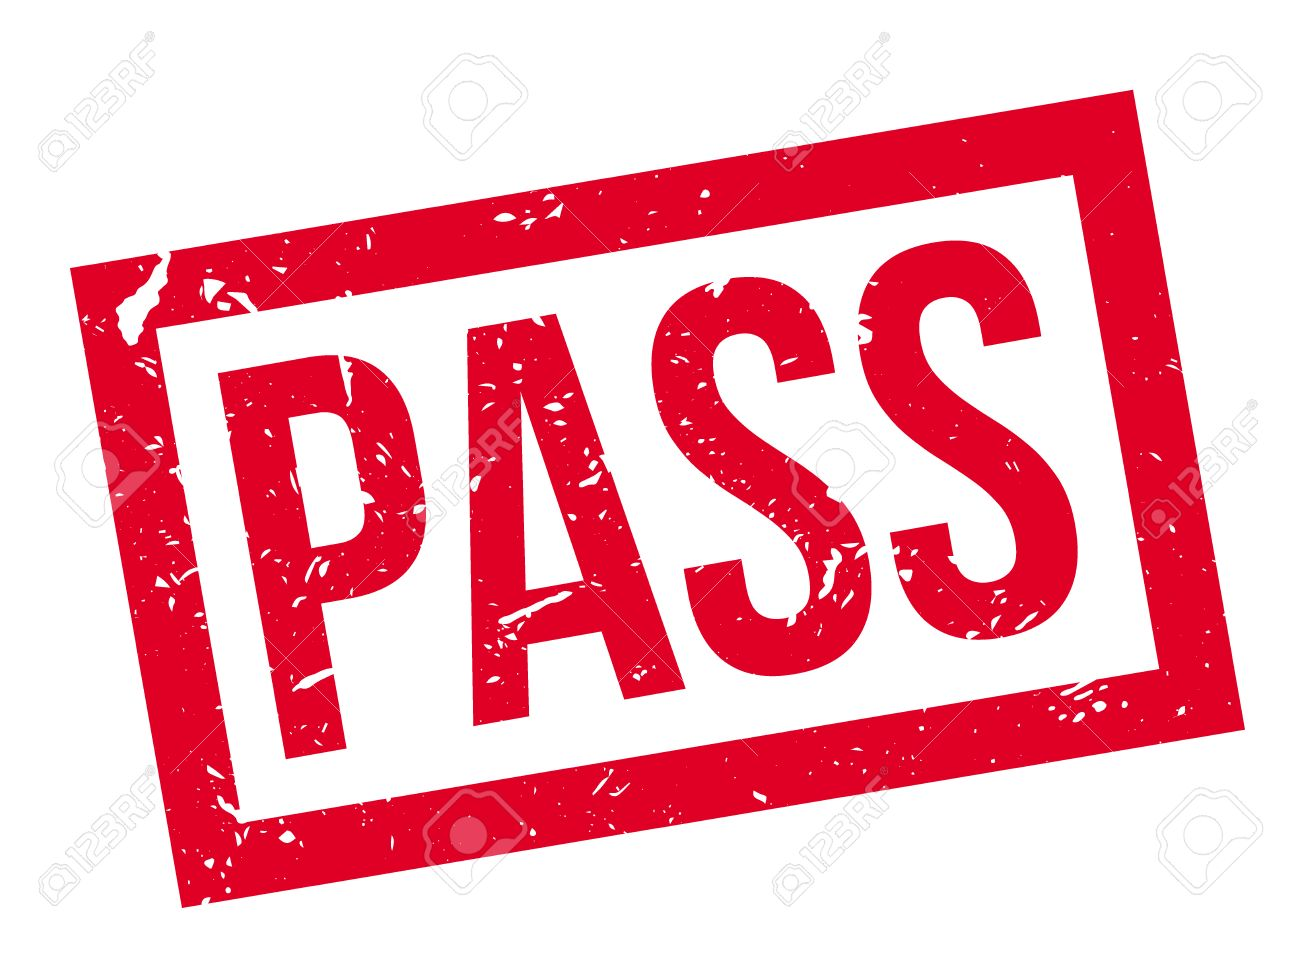 SELECCIÓN ESPAÑOLA DE FÚTBOL: TOPIC OFICIAL  - Página 8 62830466-pass-rubber-stamp-on-white-print-impress-overprint-sign-of-product-tested-proved-confirmed-permissio